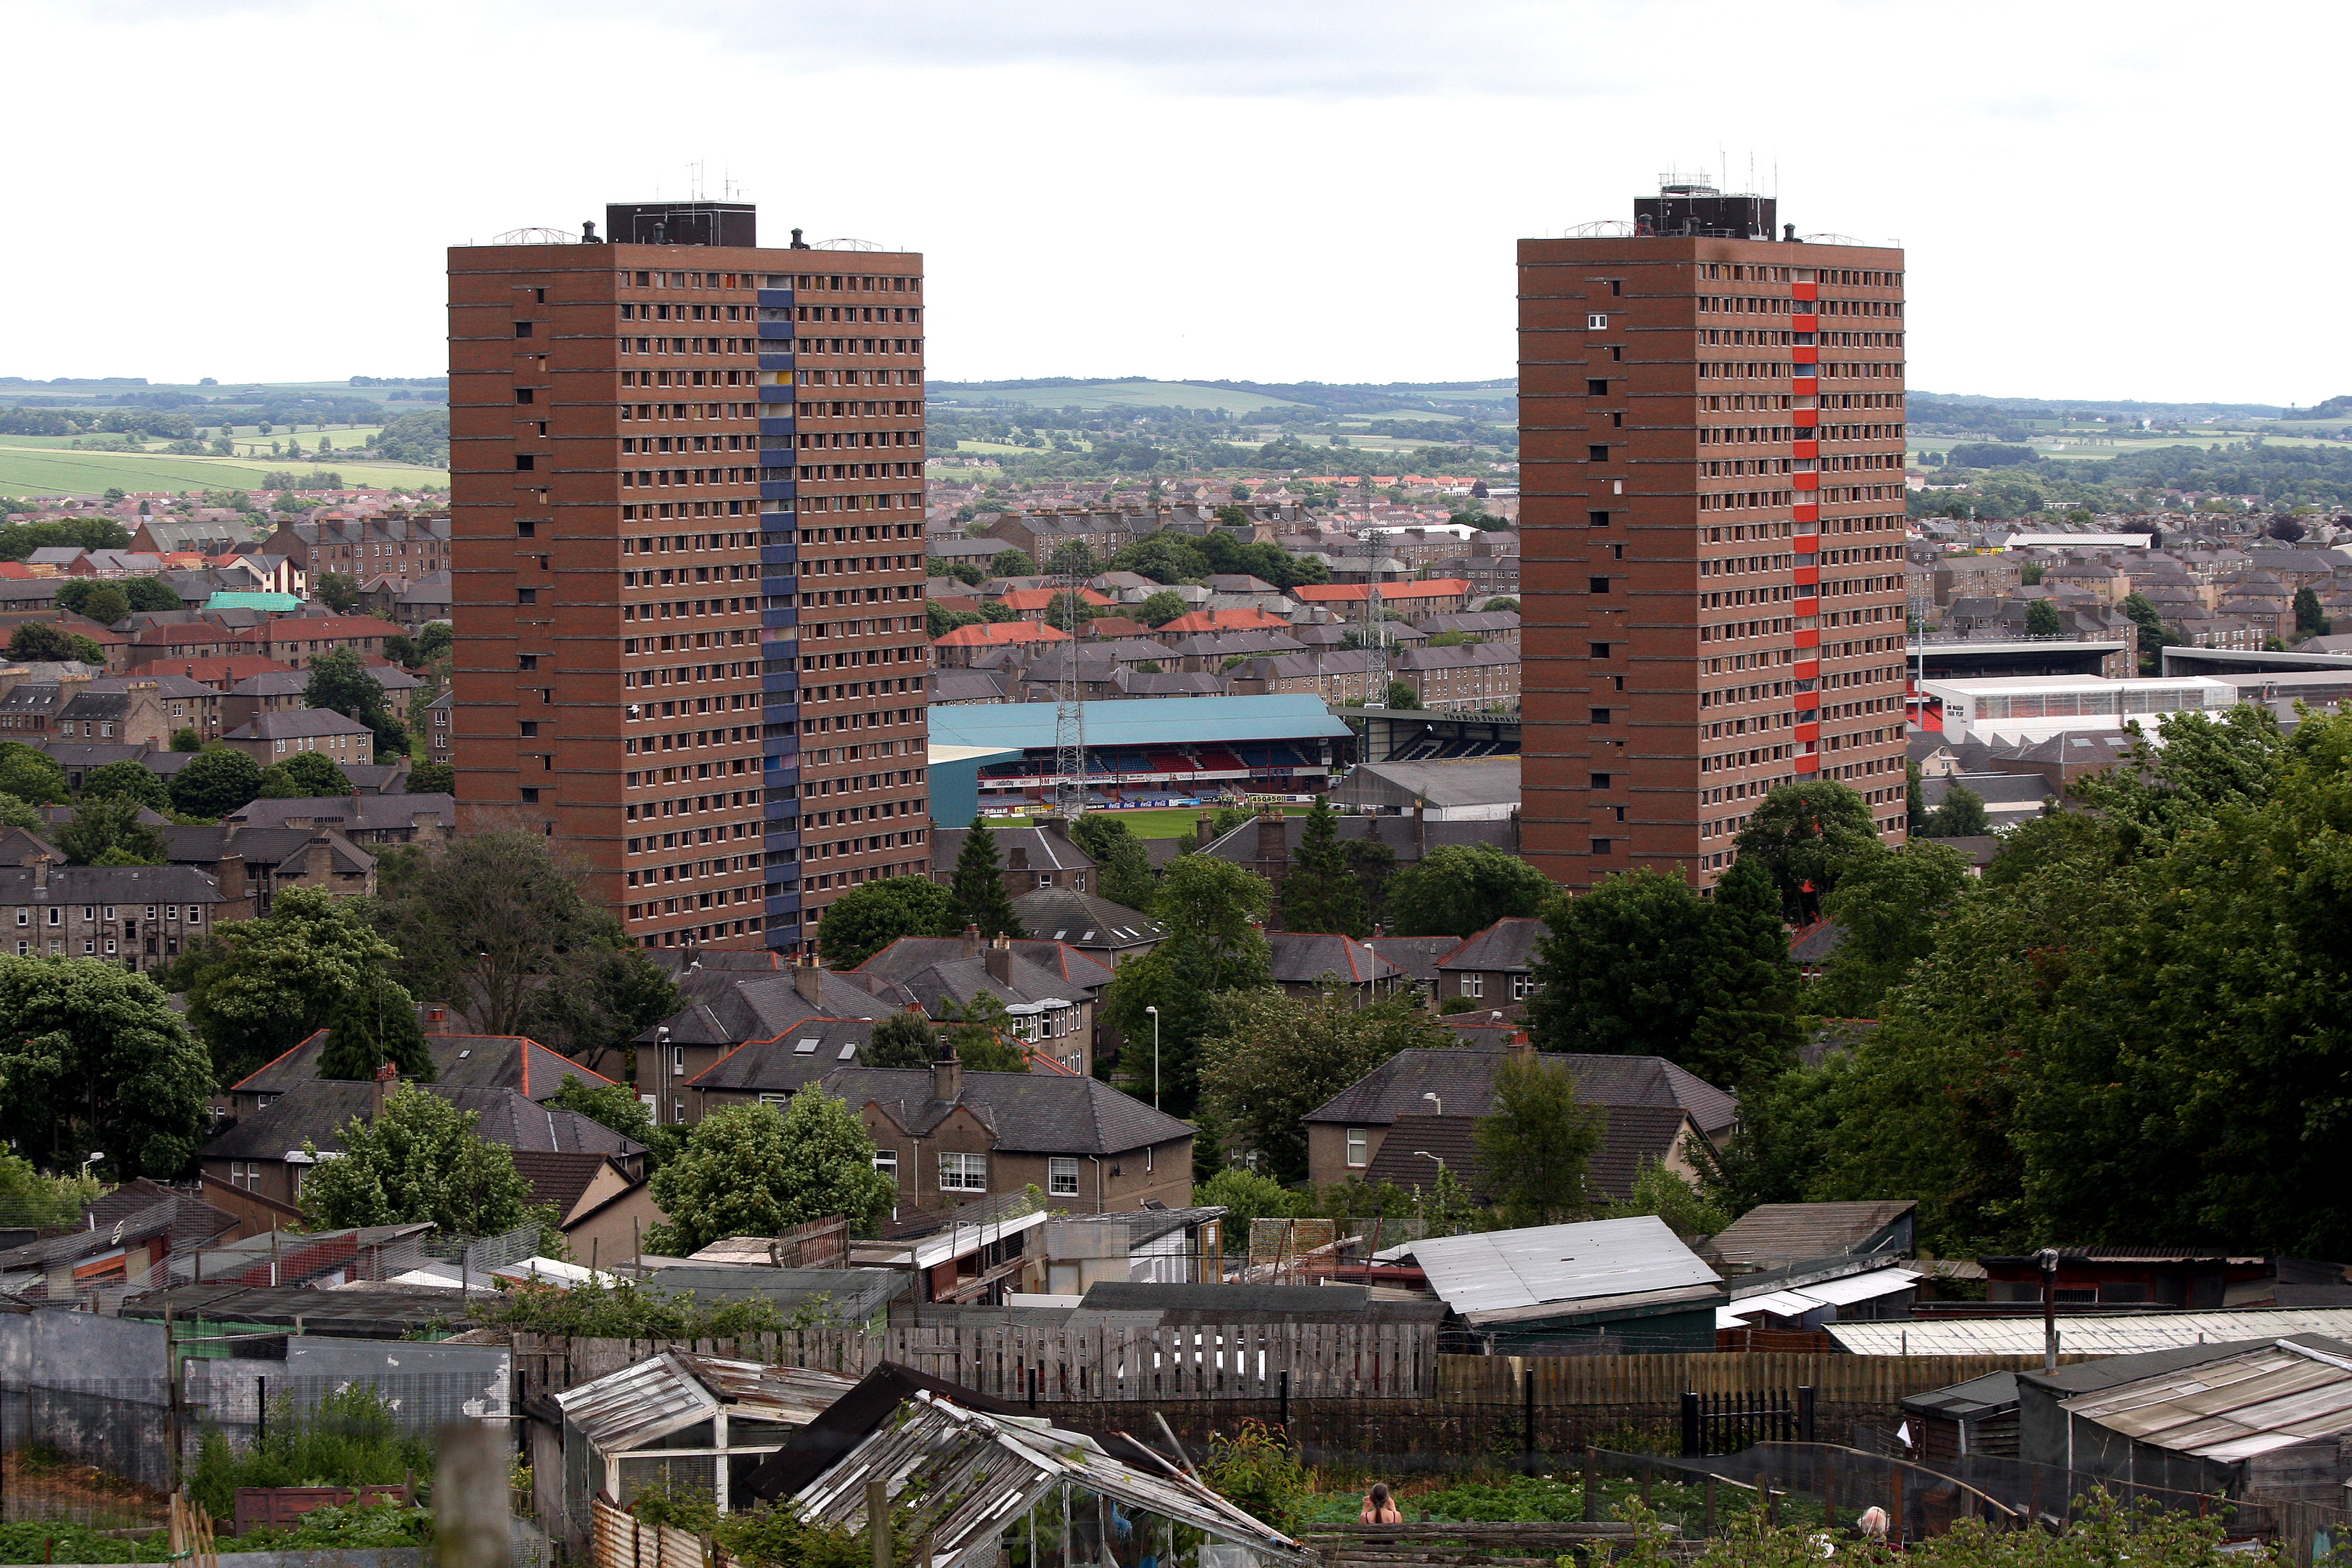 The Derby Street multis moments before the were razed to the ground in 2013.